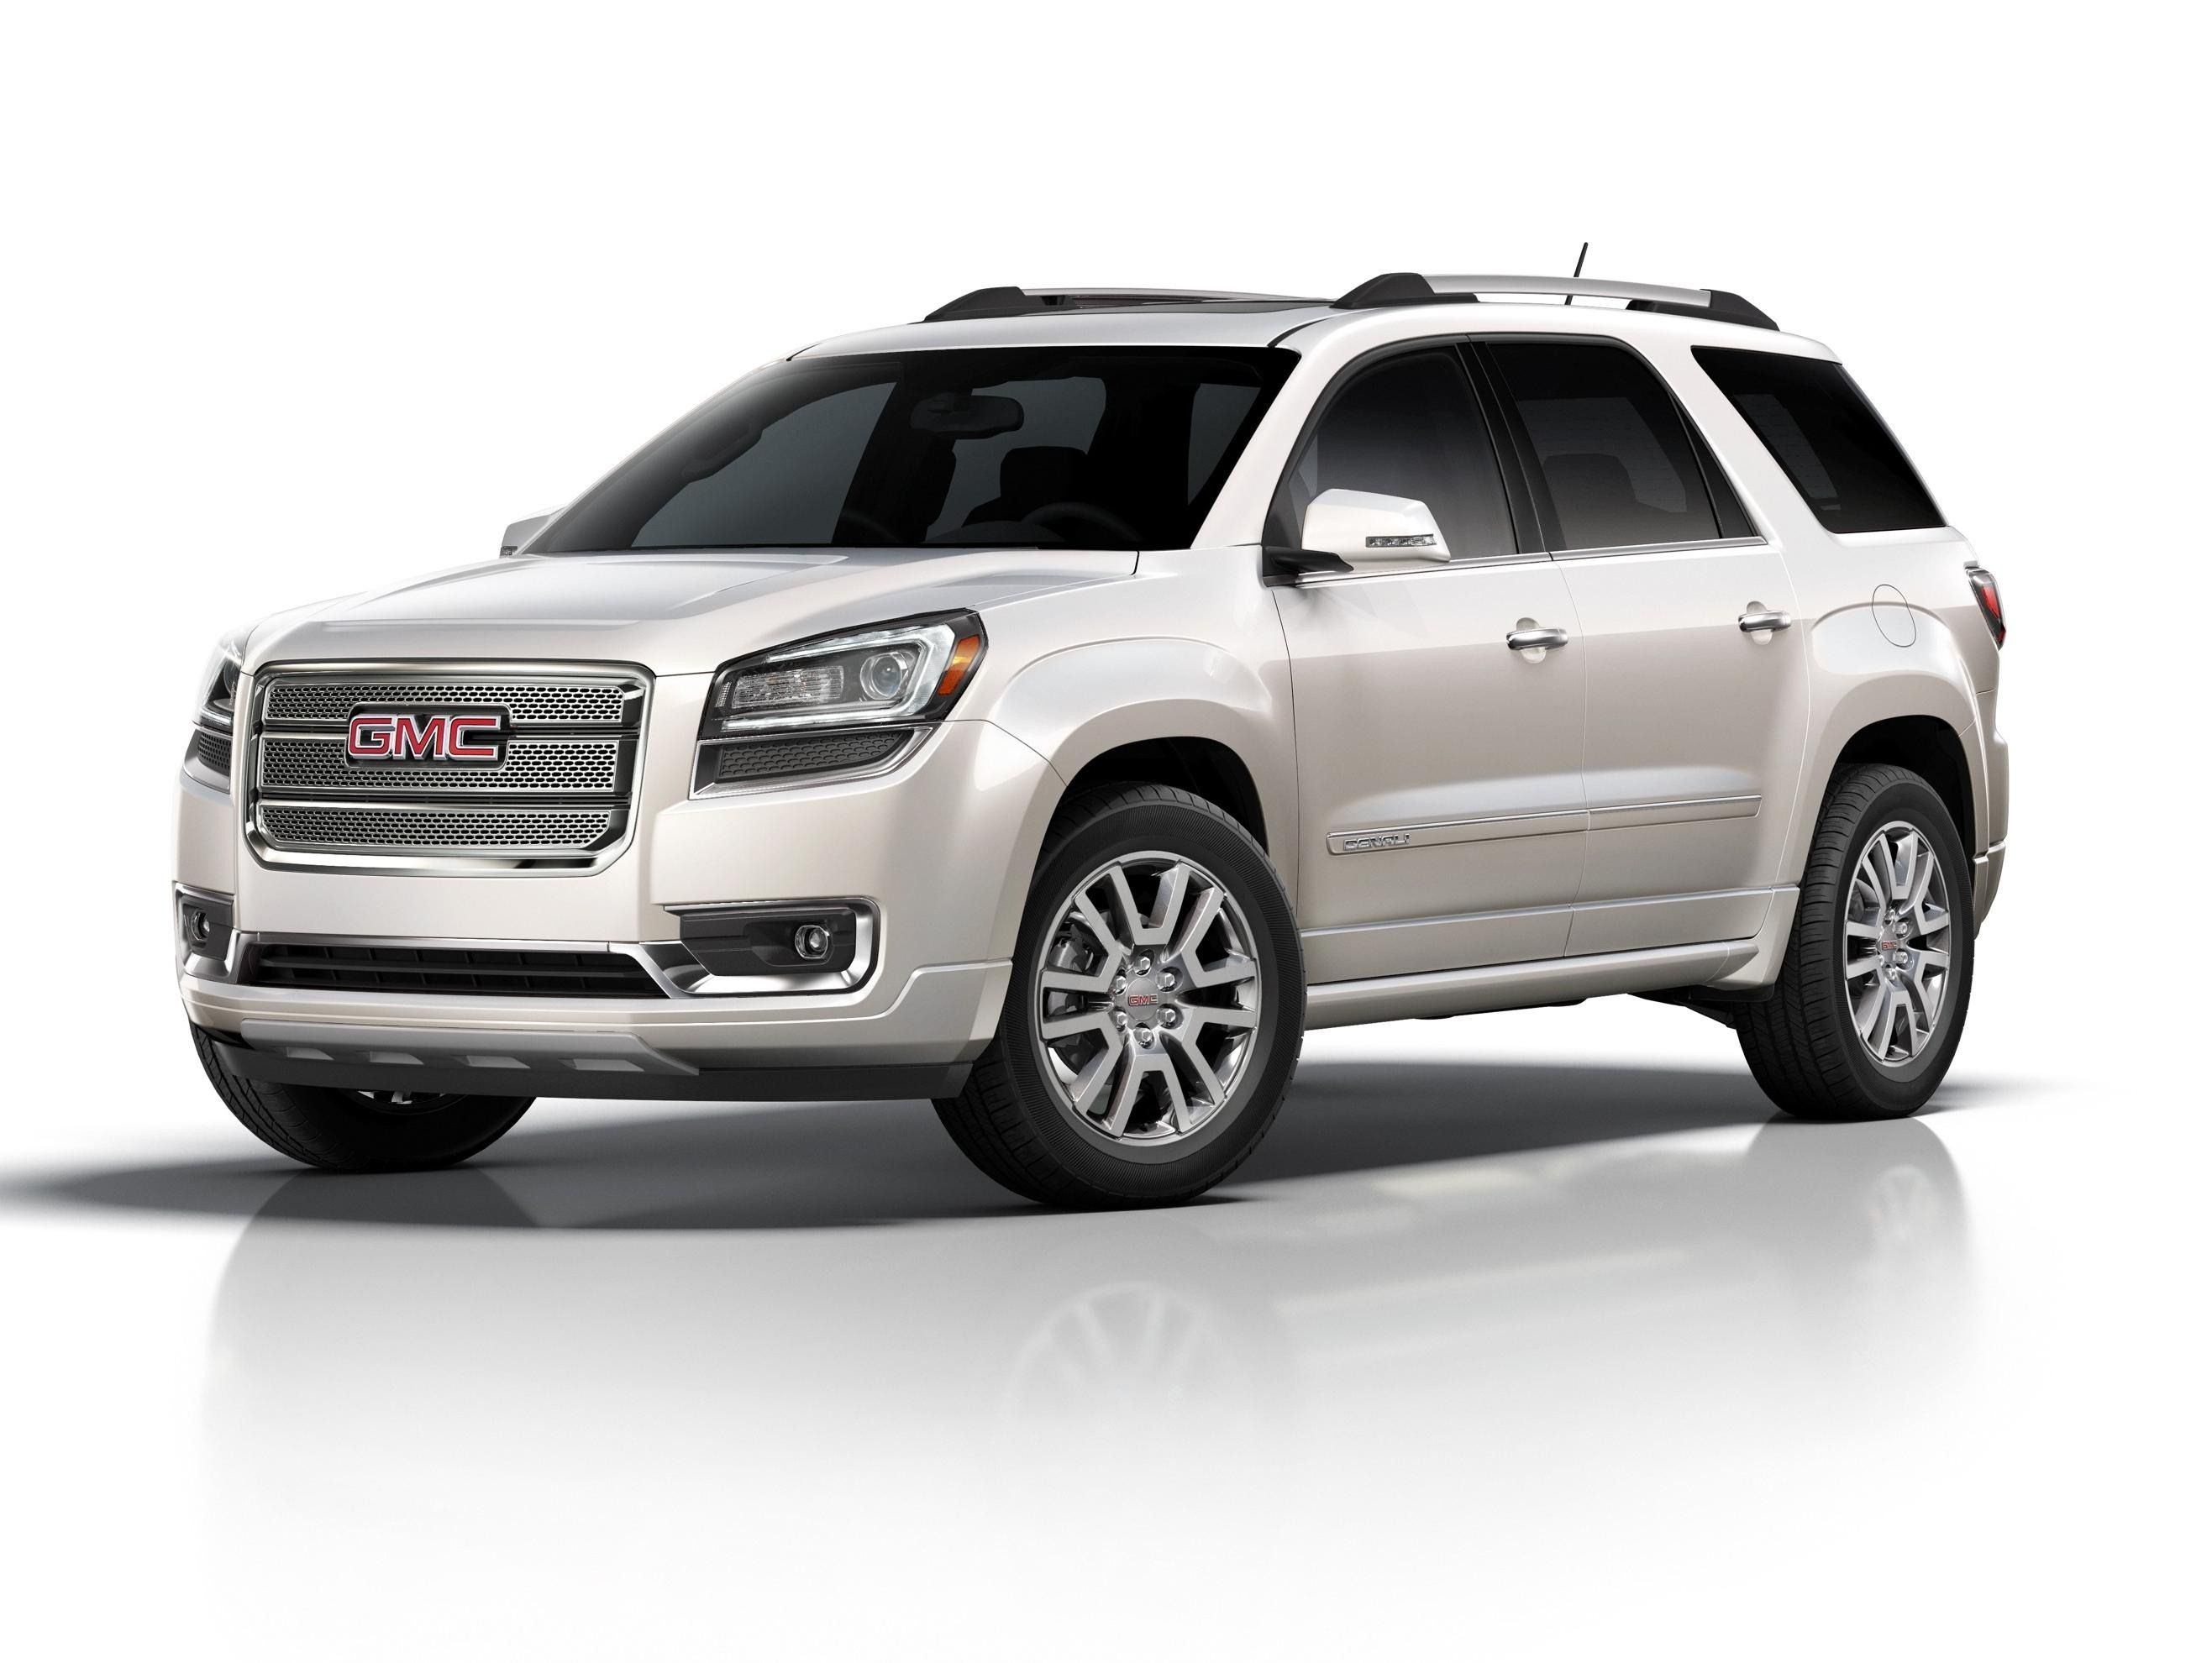 2019 Gmc Acadia Lease Picture Car Review 2018 Car Gmc Car Review